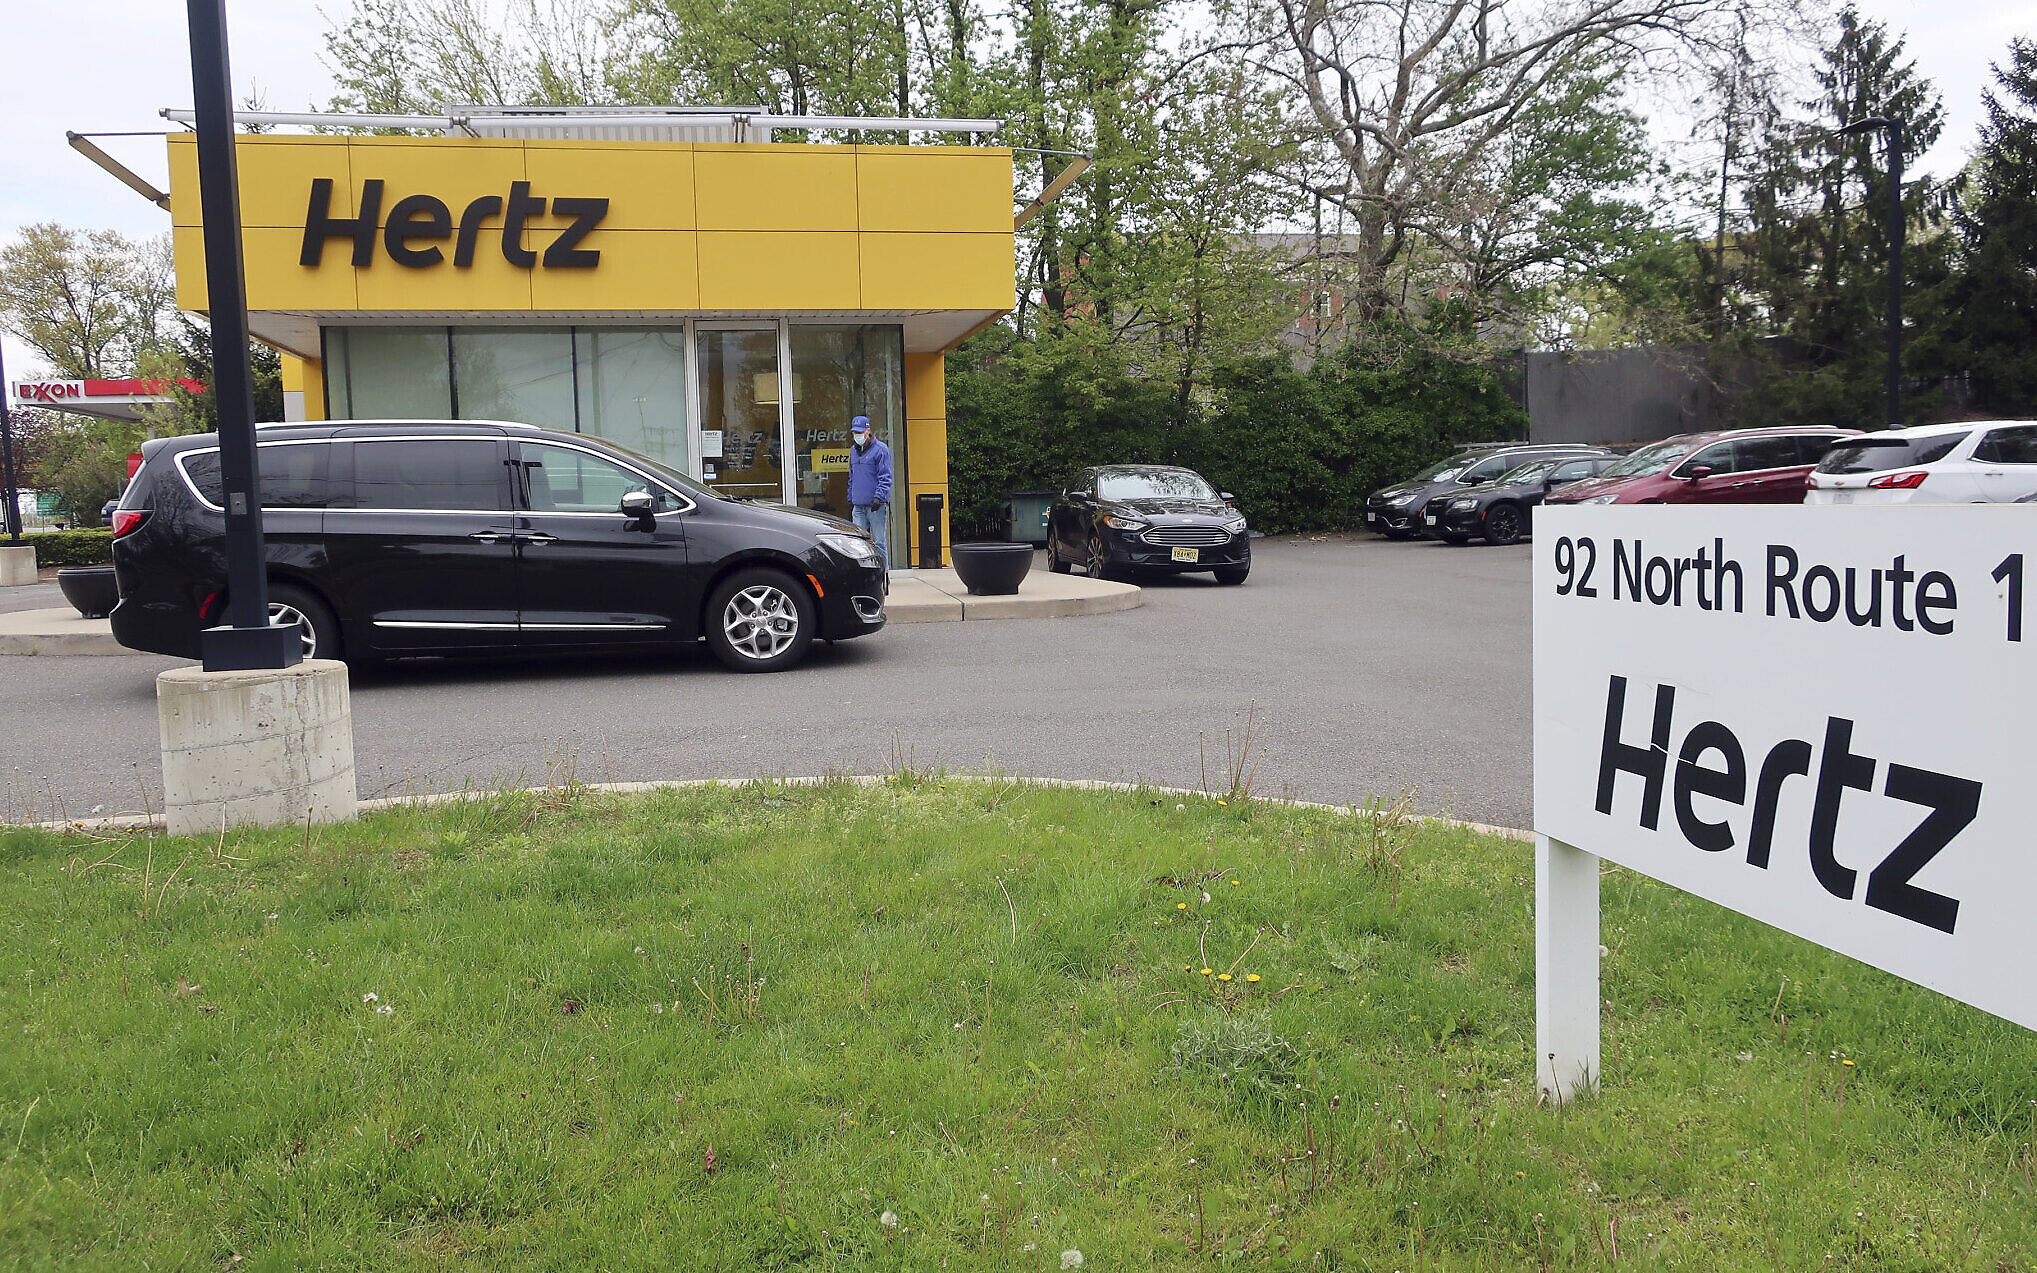 Rental Car Giant Hertz Files For Bankruptcy Protection